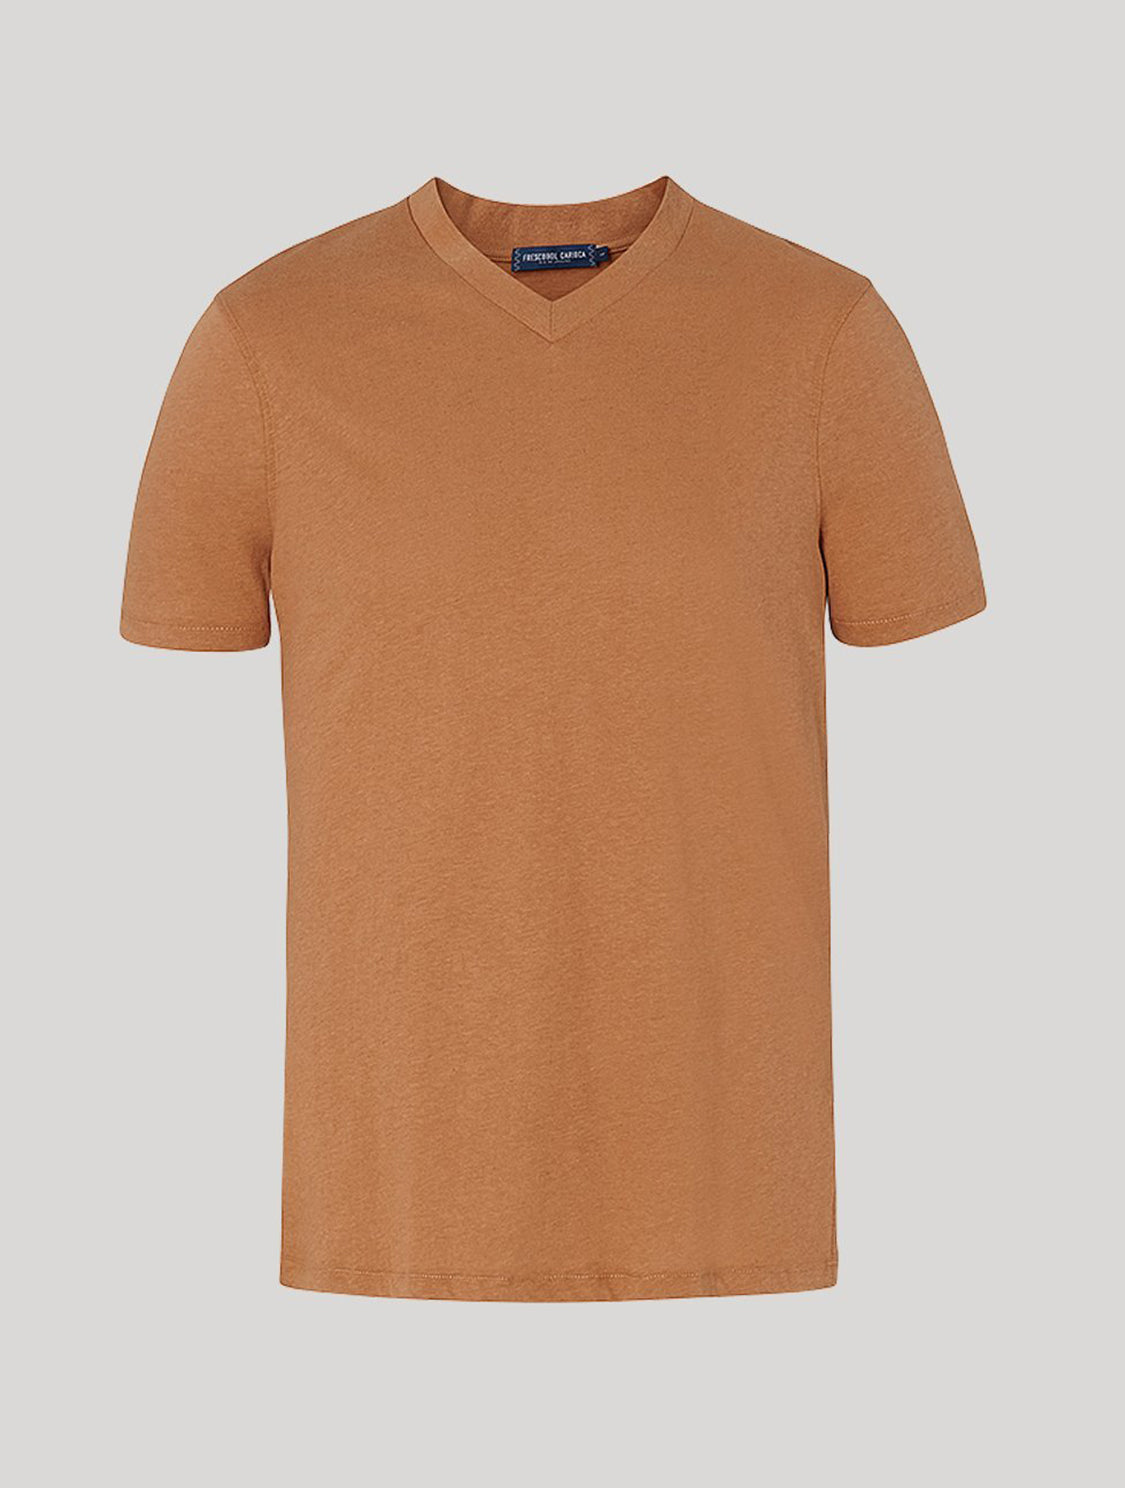 Victor T-Shirt Faded Chestnut L